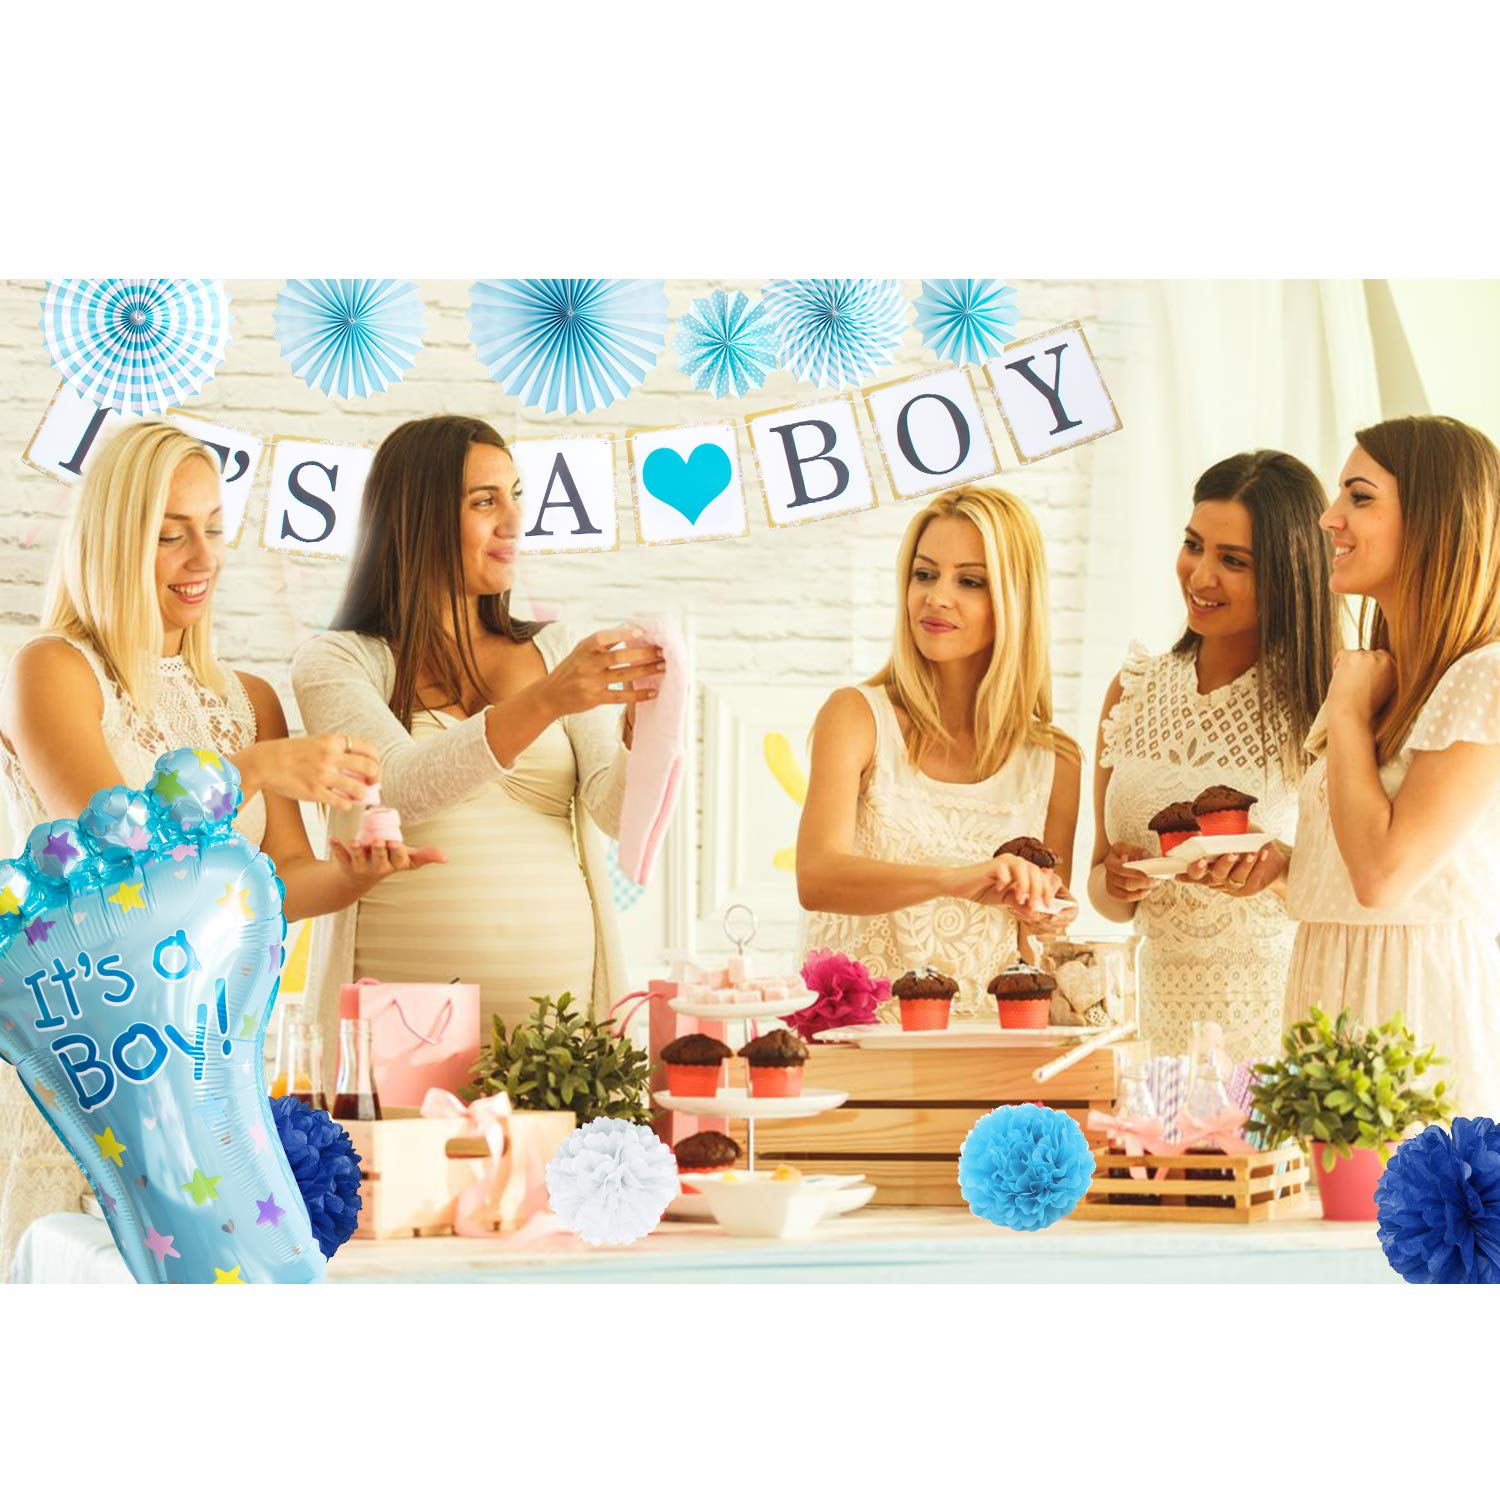 Baby Shower Decorations for Boy I BabyShower Backdrop Decor I Boy Baby Shower Decorations I Premium Party Decoration Items I Its a Boy Banner Star Swirls Foot-shaped Foil Balloon Lanterns, Cake Topper by Moment-O-Mania (Image #2)